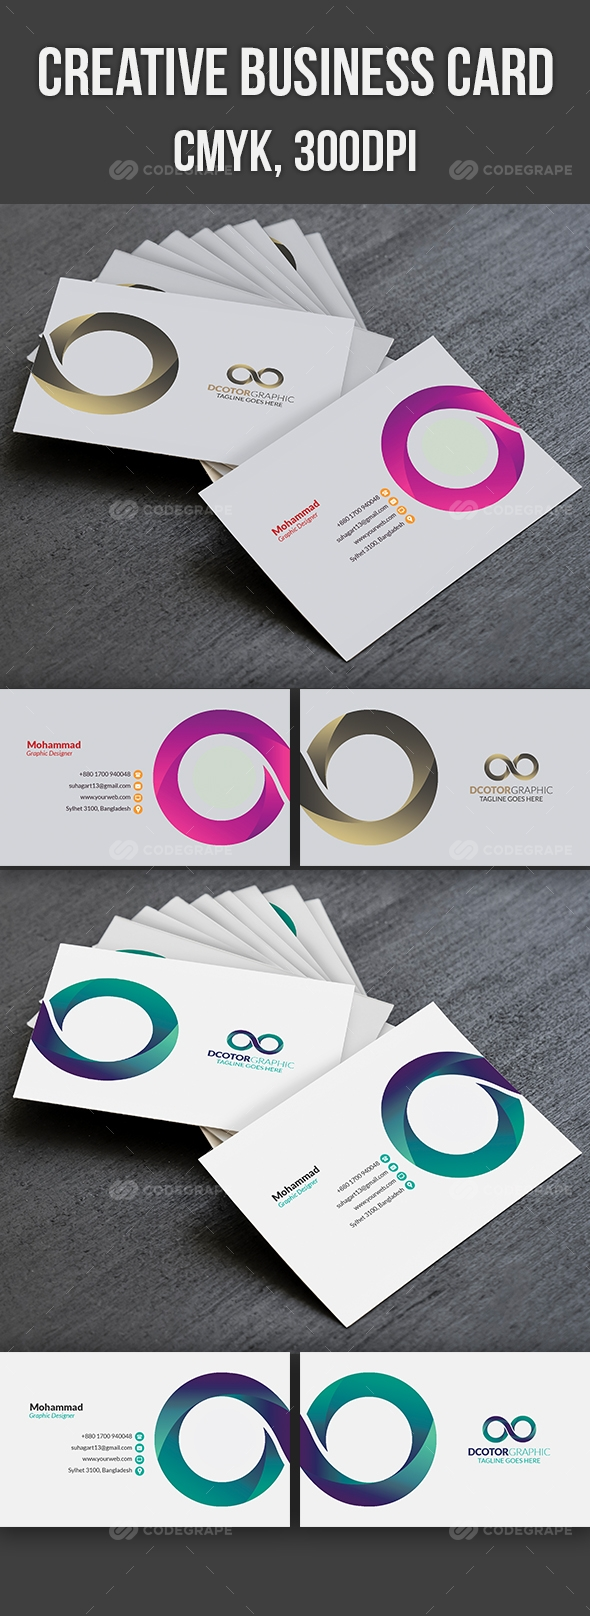 Creative Business Card Print